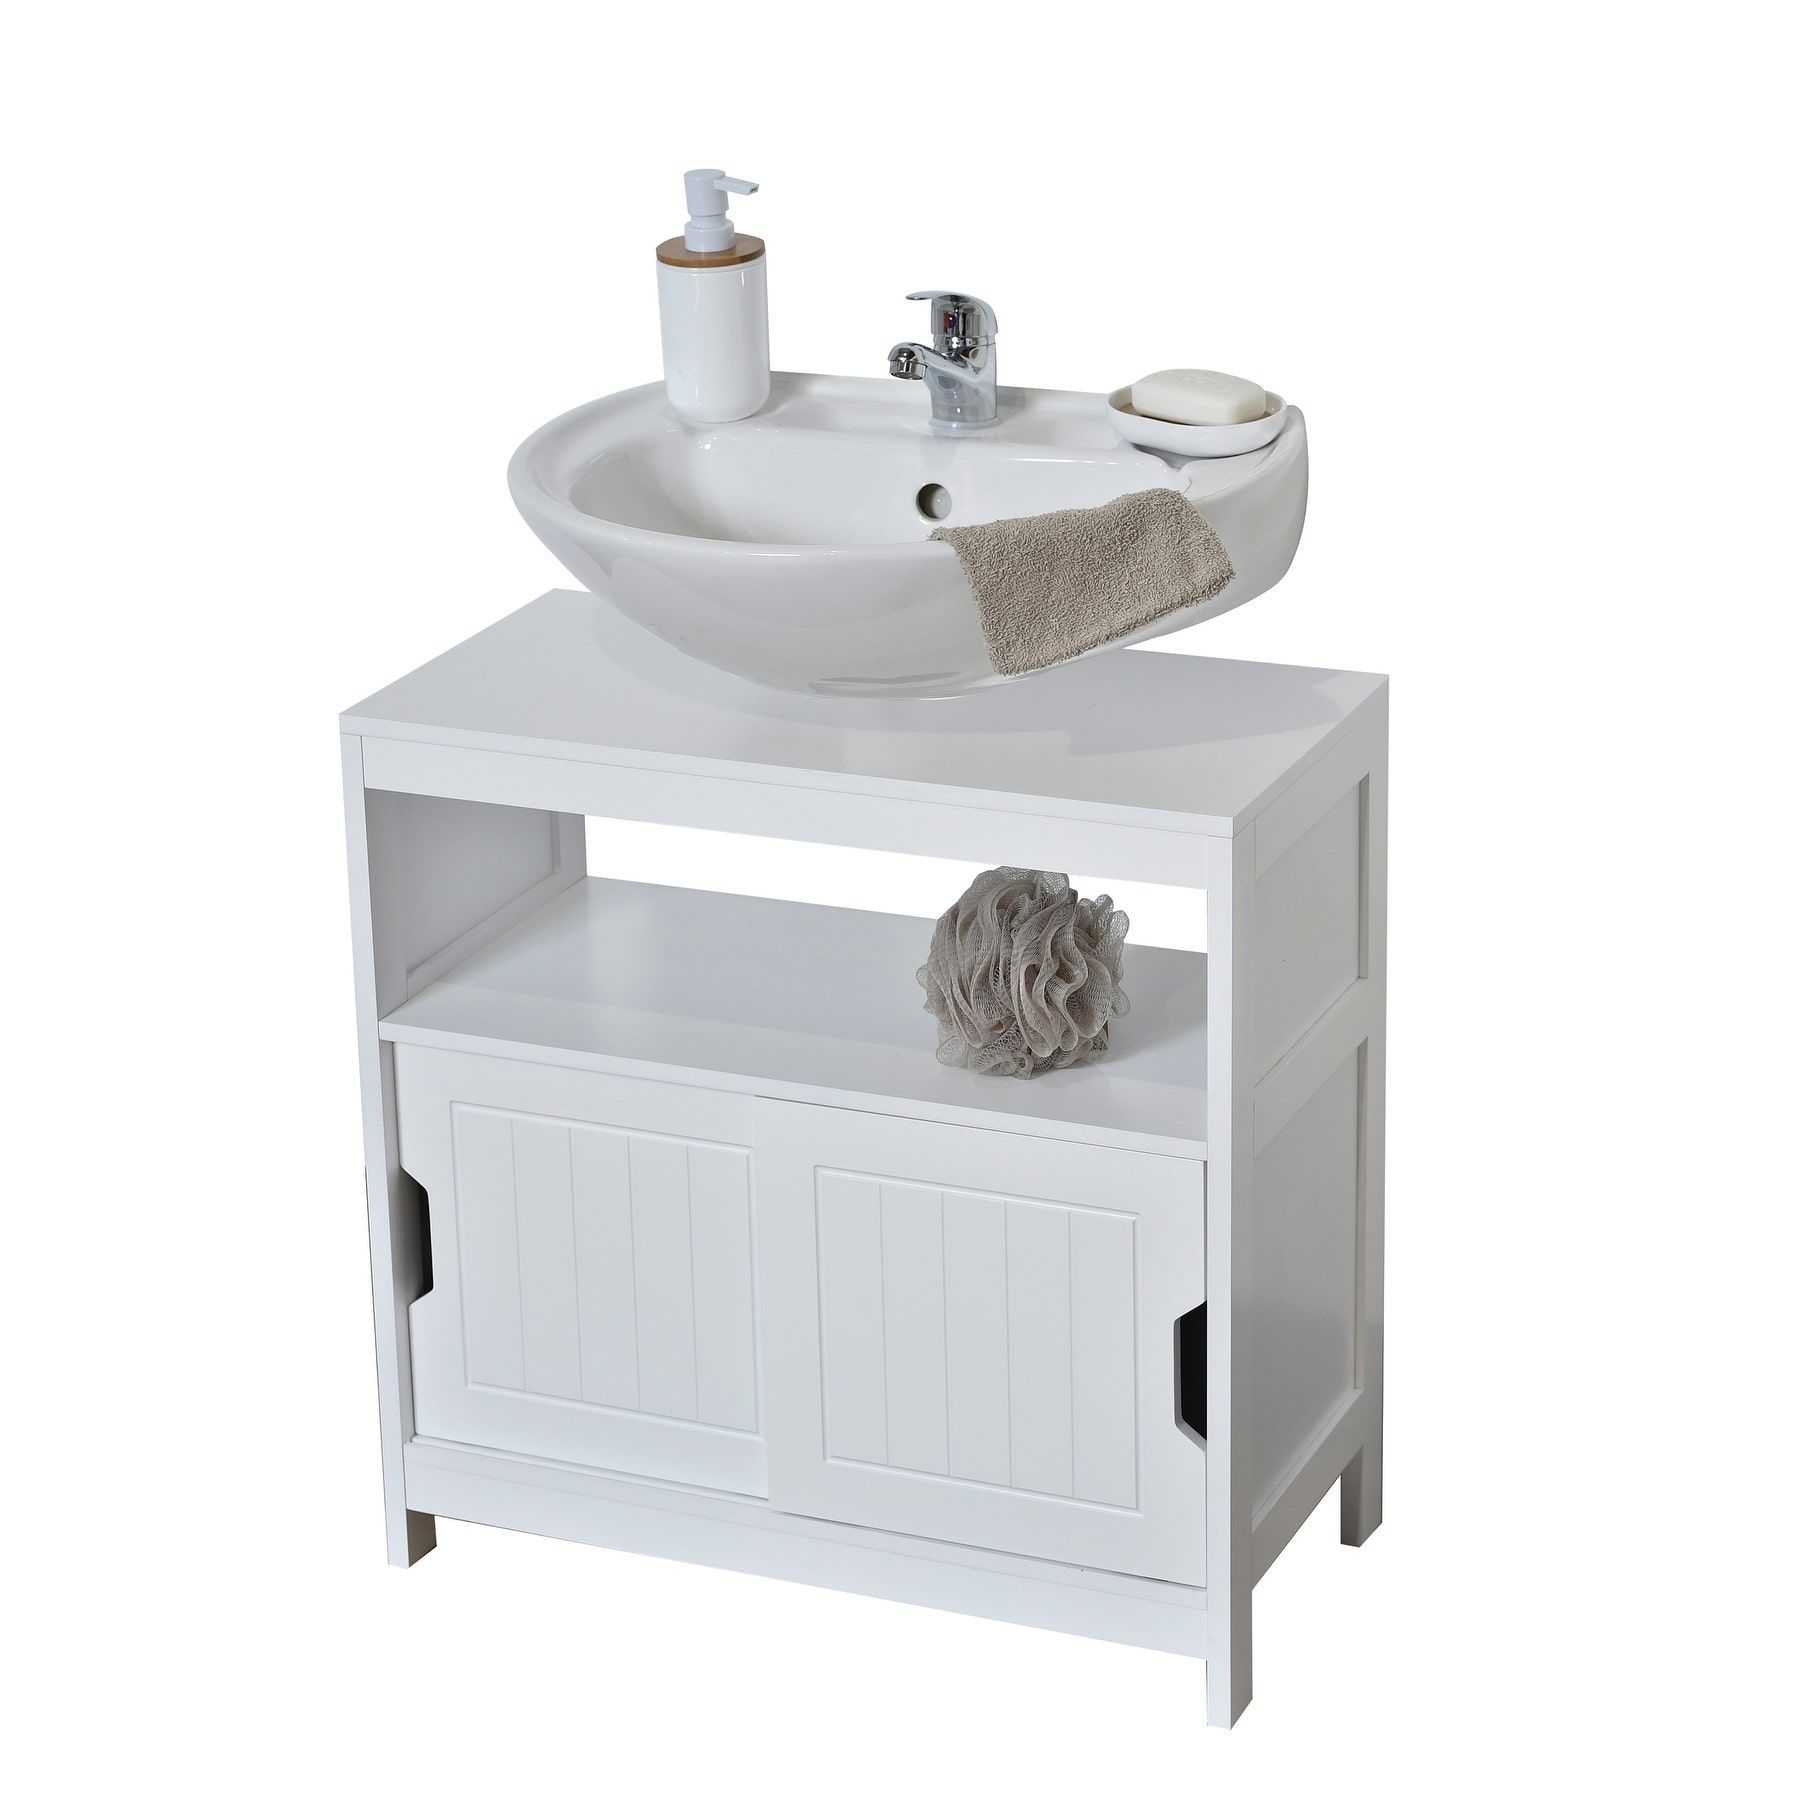 Evideco Non Pedestal Bathroom Under Sink Cabinet Cap Ferret White ...